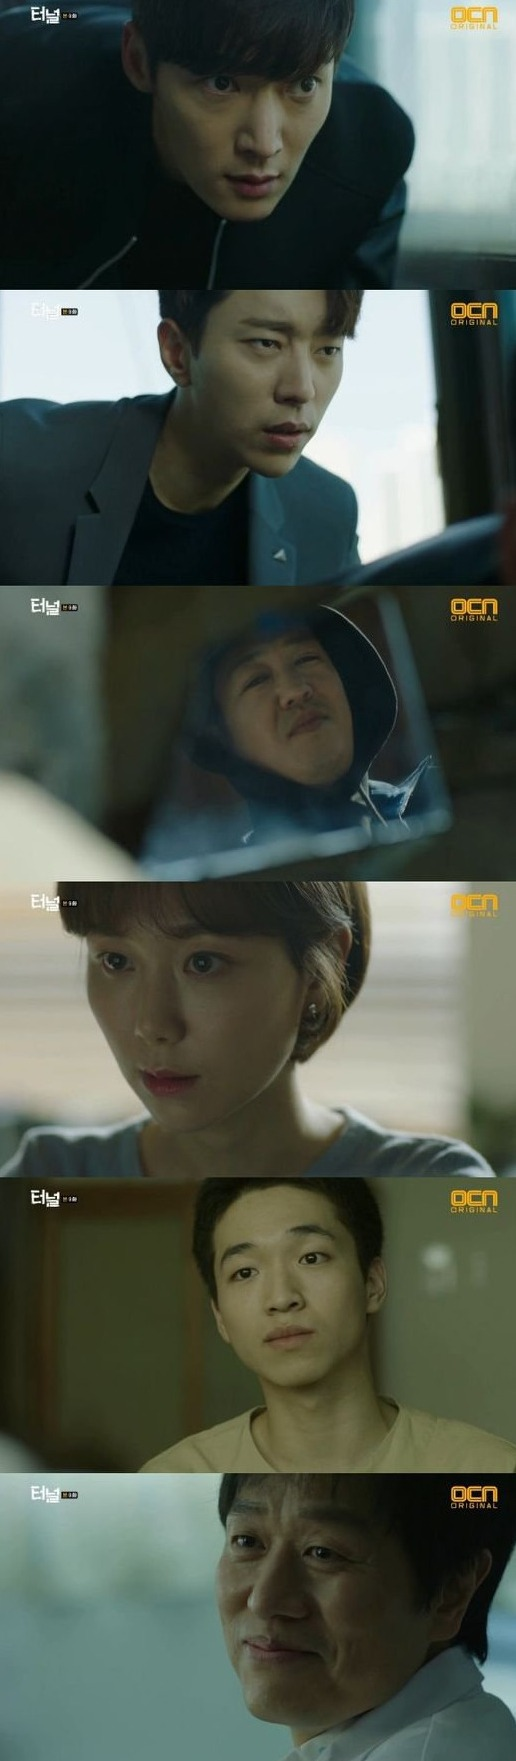 [Spoiler] Added episodes 9 and 10 captures for the Korean drama 'Tunnel - Drama'